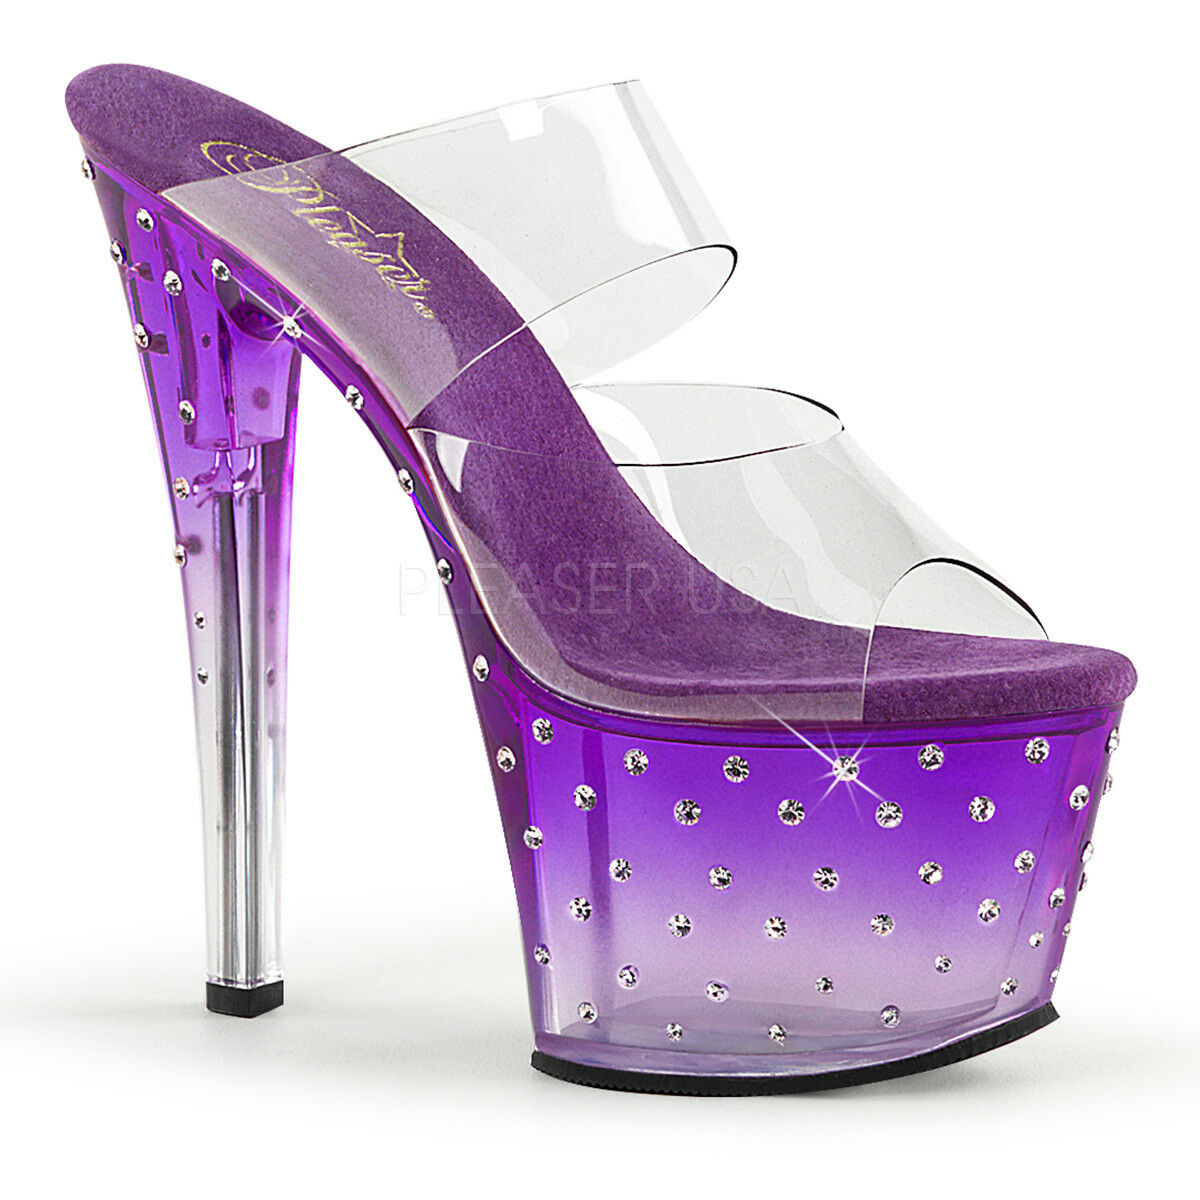 Pleaser STARDUST-702T Clear/Purple Rhinestone Studded Studded Studded Platform Ankle Strap Heels 827fdc